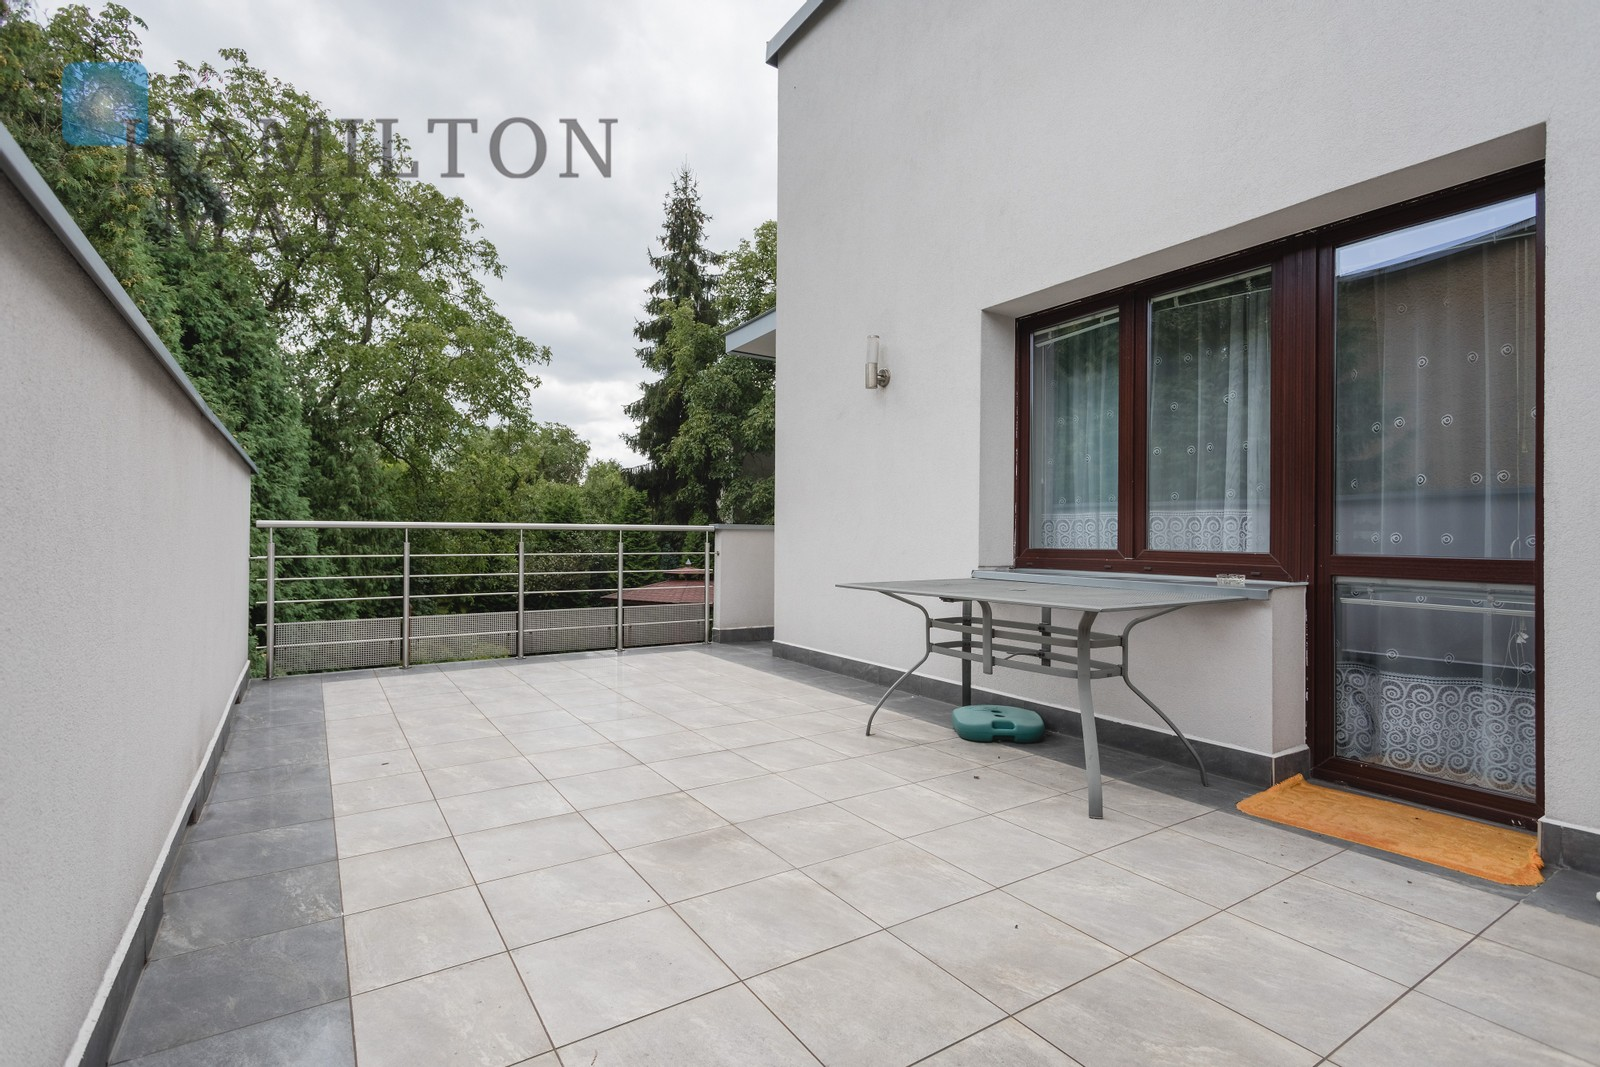 A comfortable house for rent, located in a green, peacefularea Krakow for rent